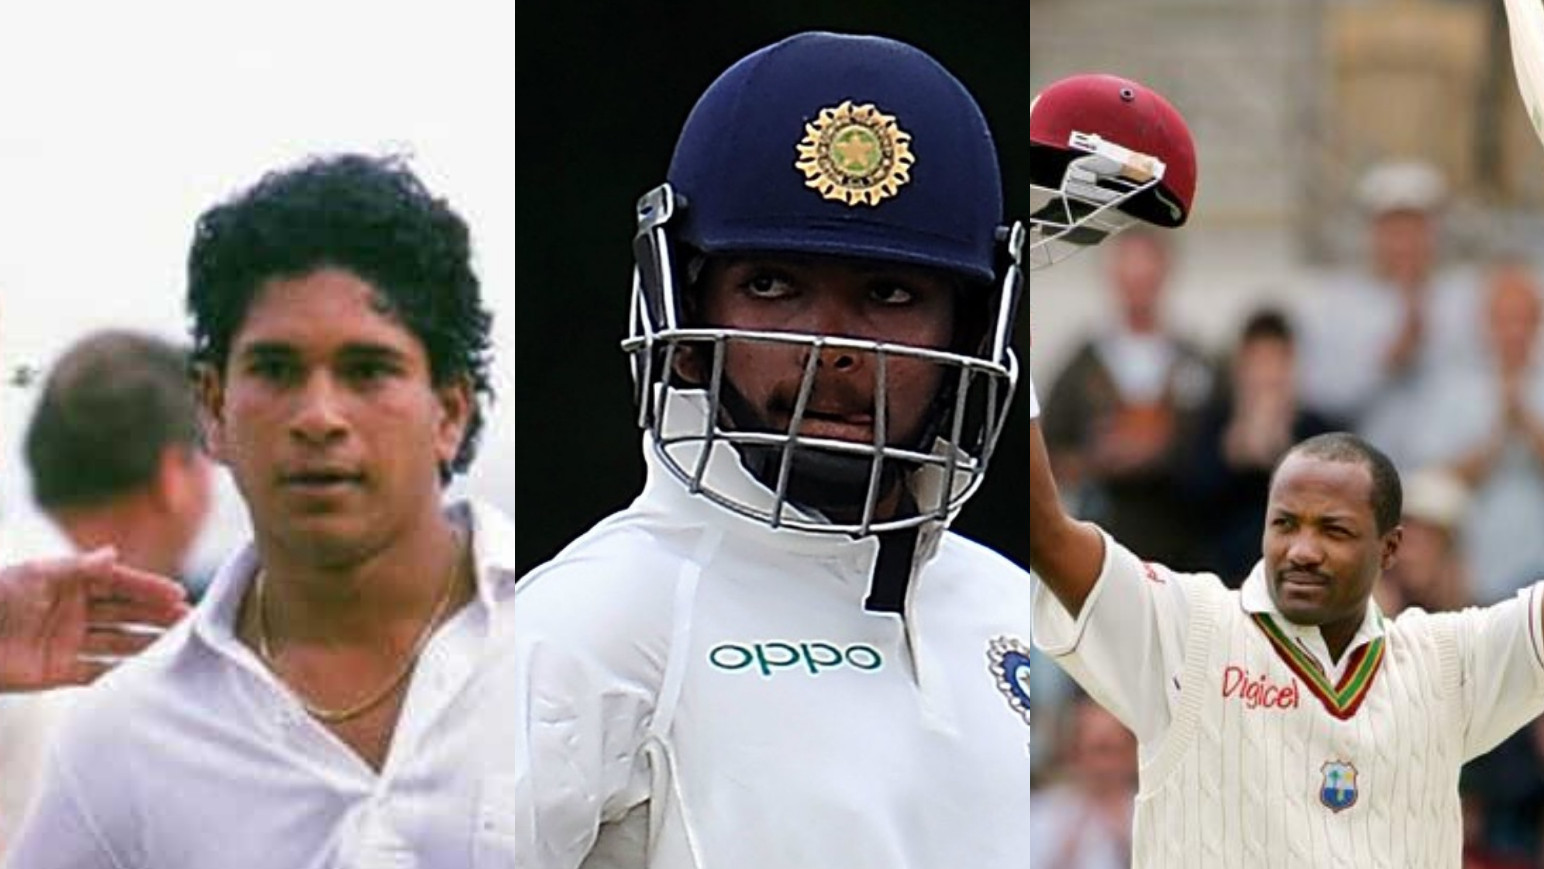 IND v WI 2018: Mark Waugh calls Prithvi Shaw combination of Lara and Tendulkar after debut Test century